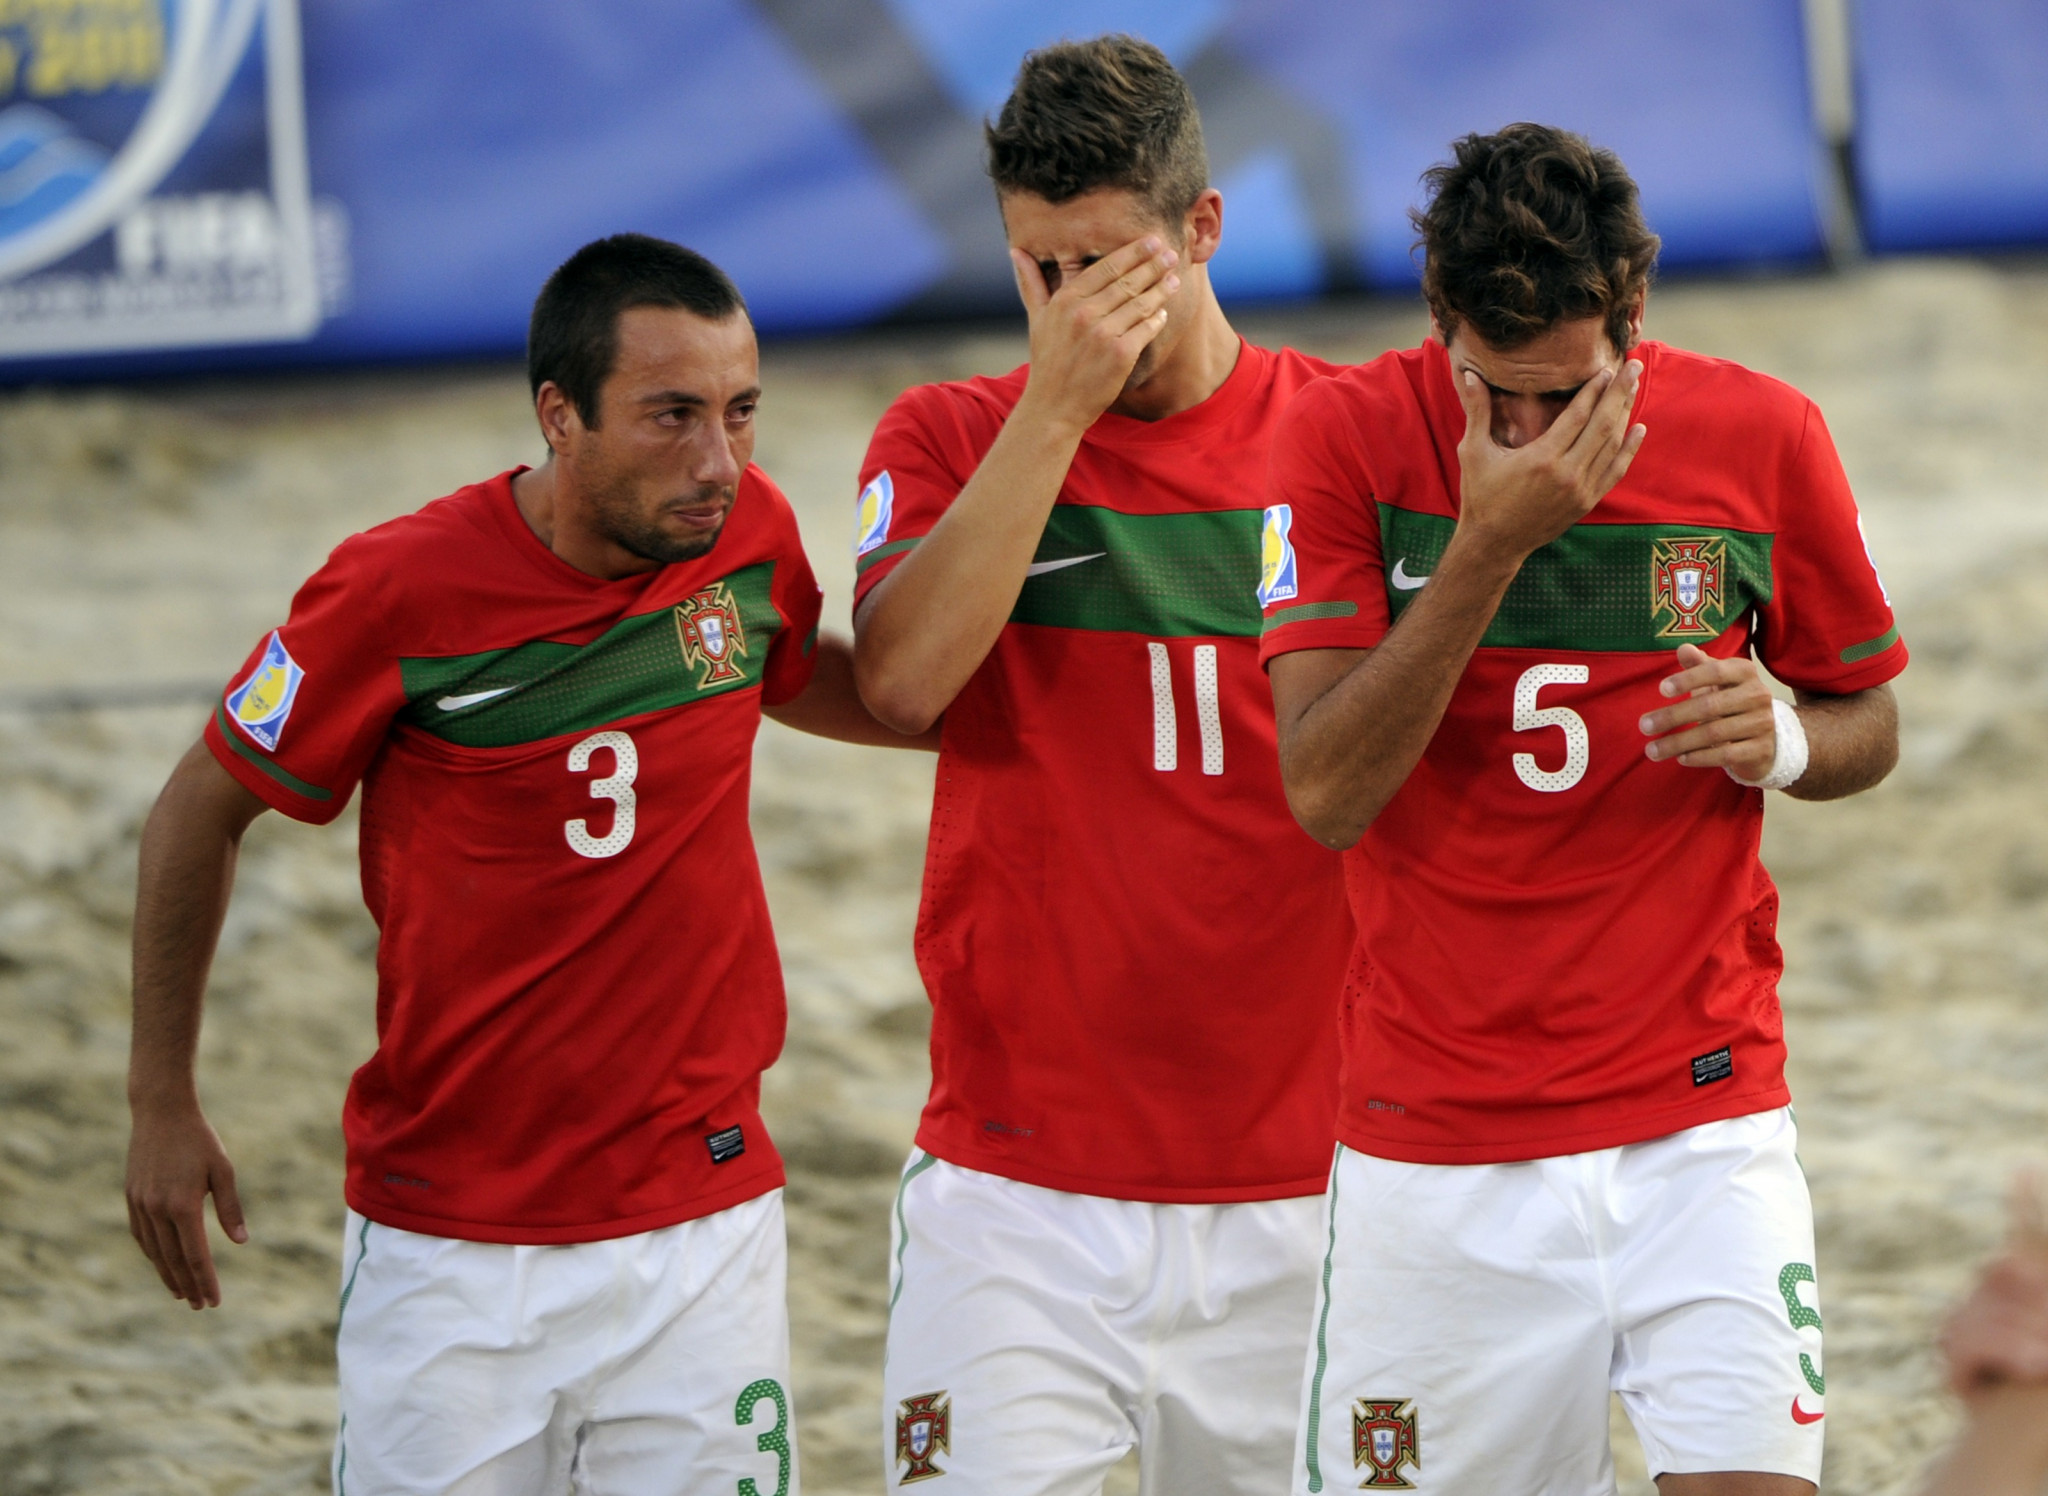 Defending champions Portugal knocked out of 2021 FIFA Beach Soccer World Cup